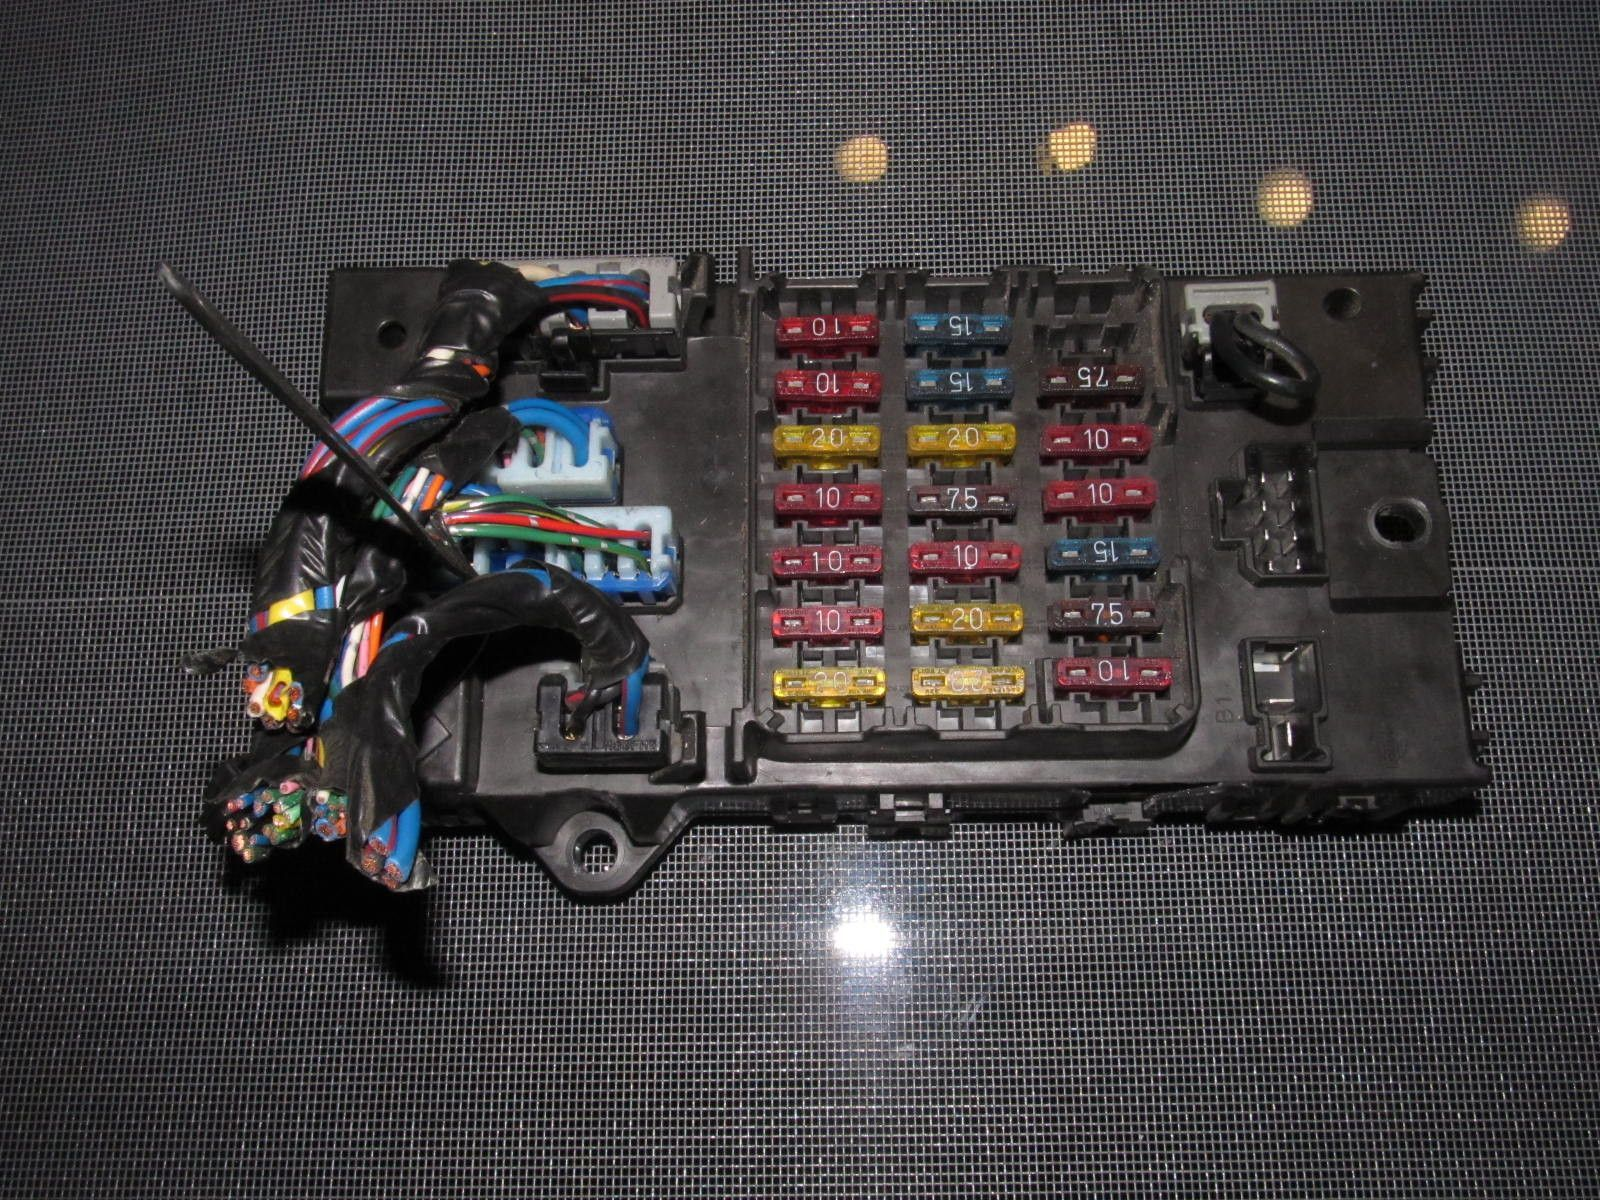 nissan 300zx fuse box for wiring library 90 91 92 93 94 95 96 nissan 300zx oem interior fuse box [ 1600 x 1200 Pixel ]